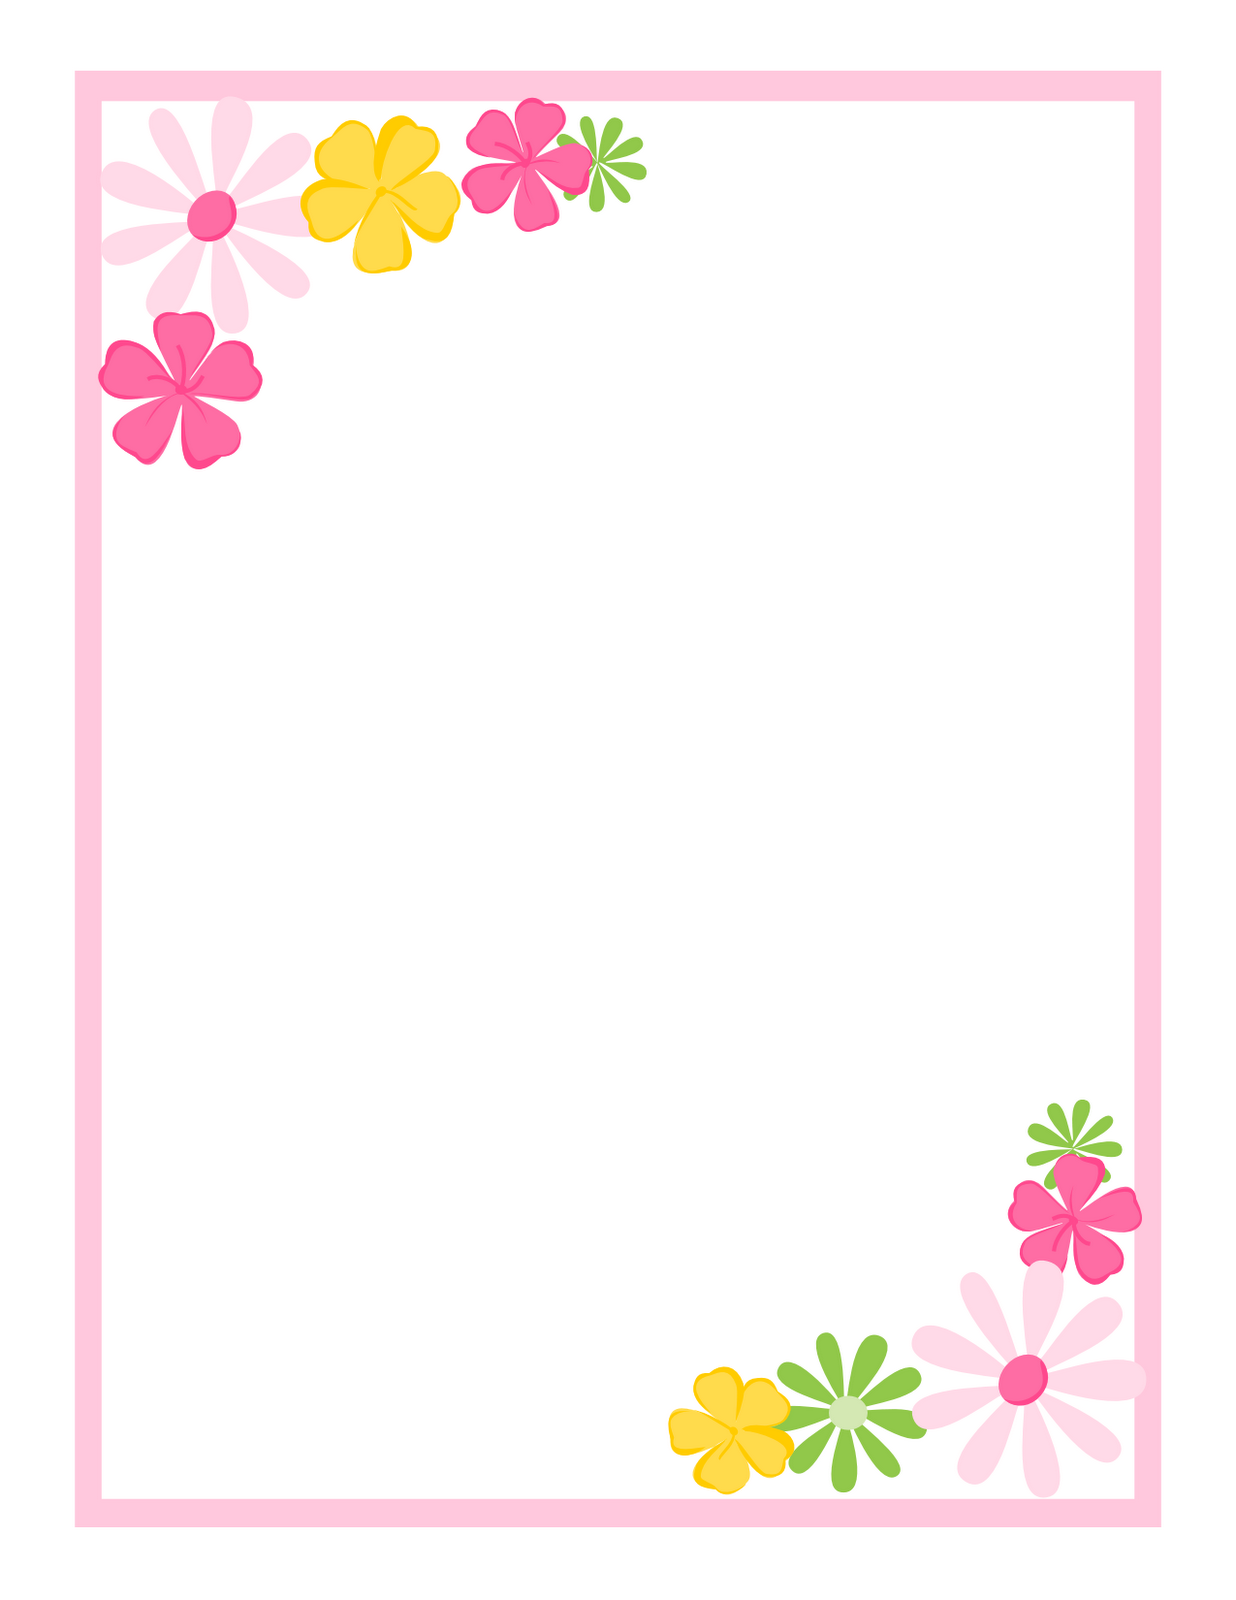 Simple Flower Border Designs For Paper | www.imgkid.com ...